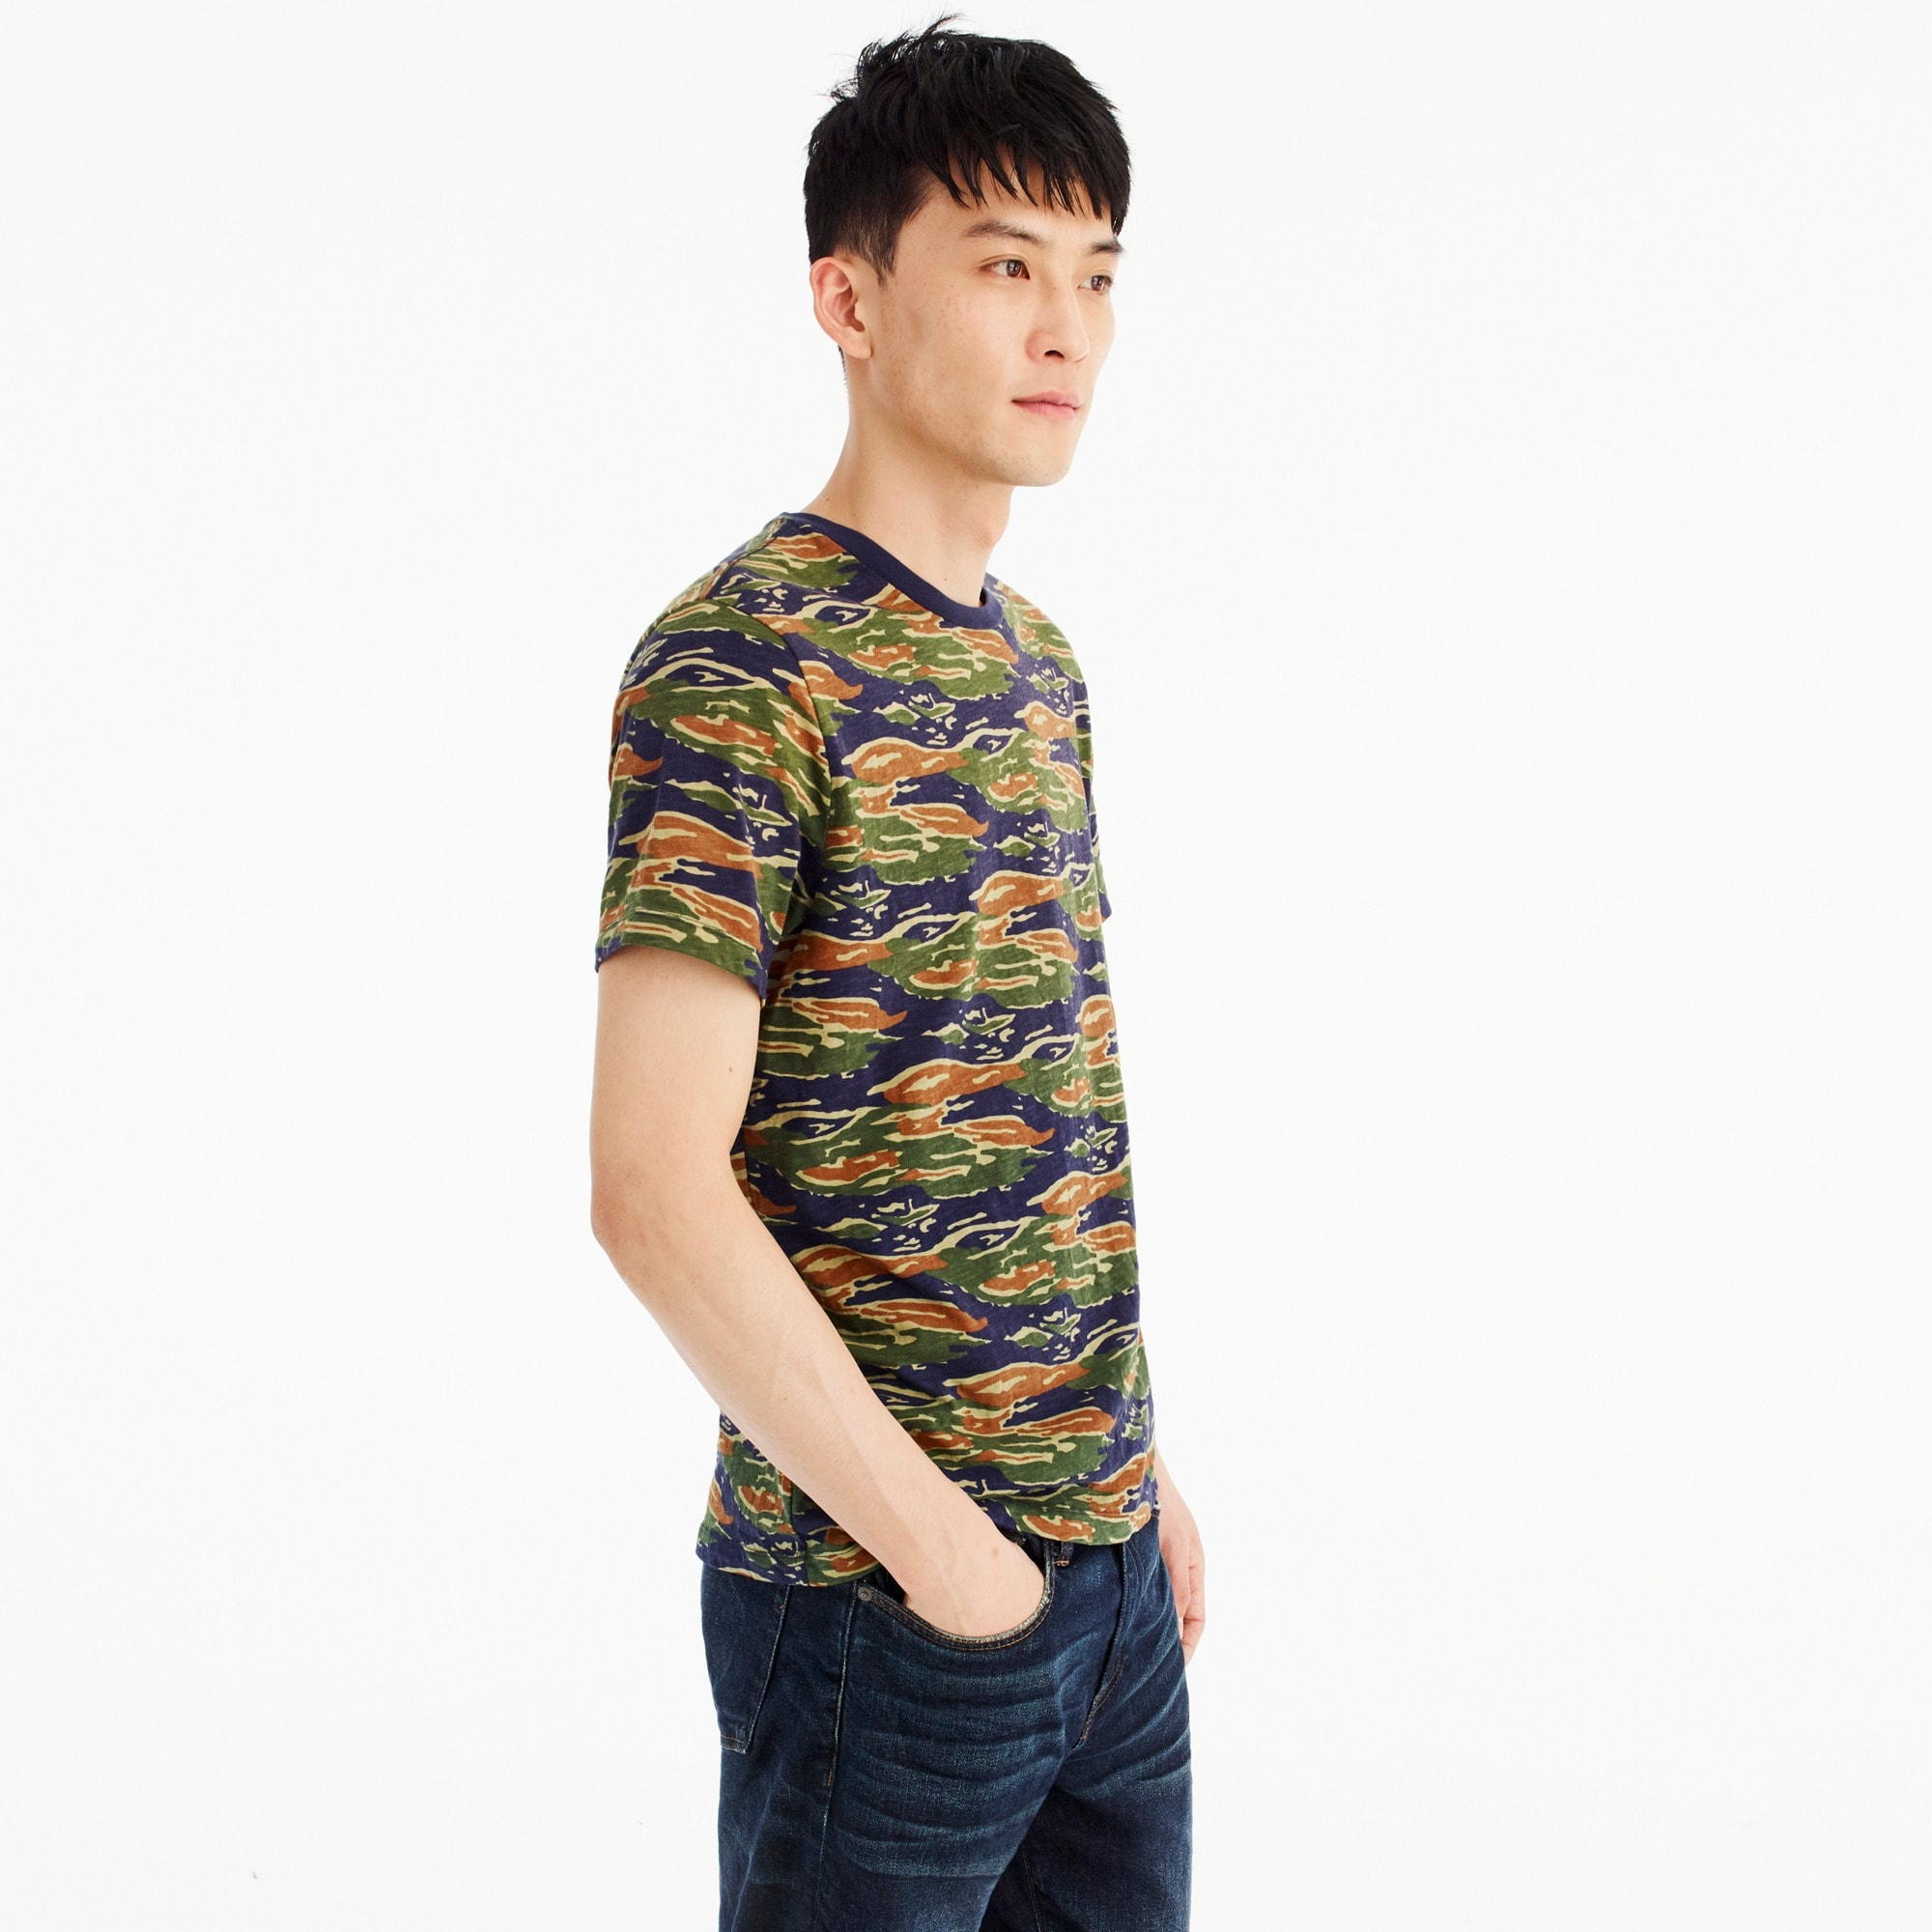 Image 3 for Broken-in cotton jersey T-shirt in tiger stripe camo